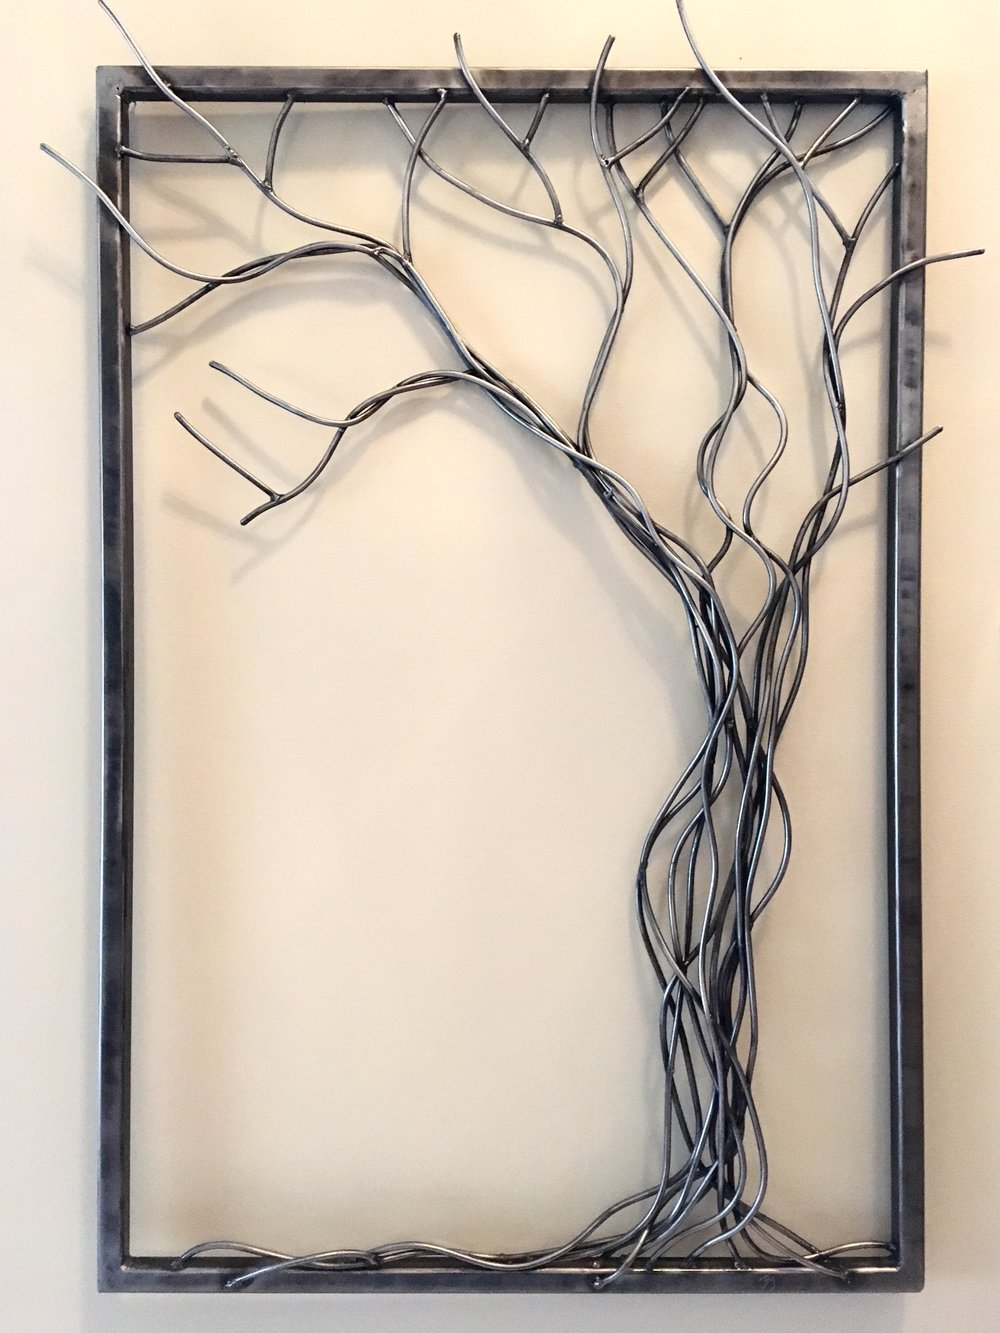 Tree | Steel Rod | Wall Art